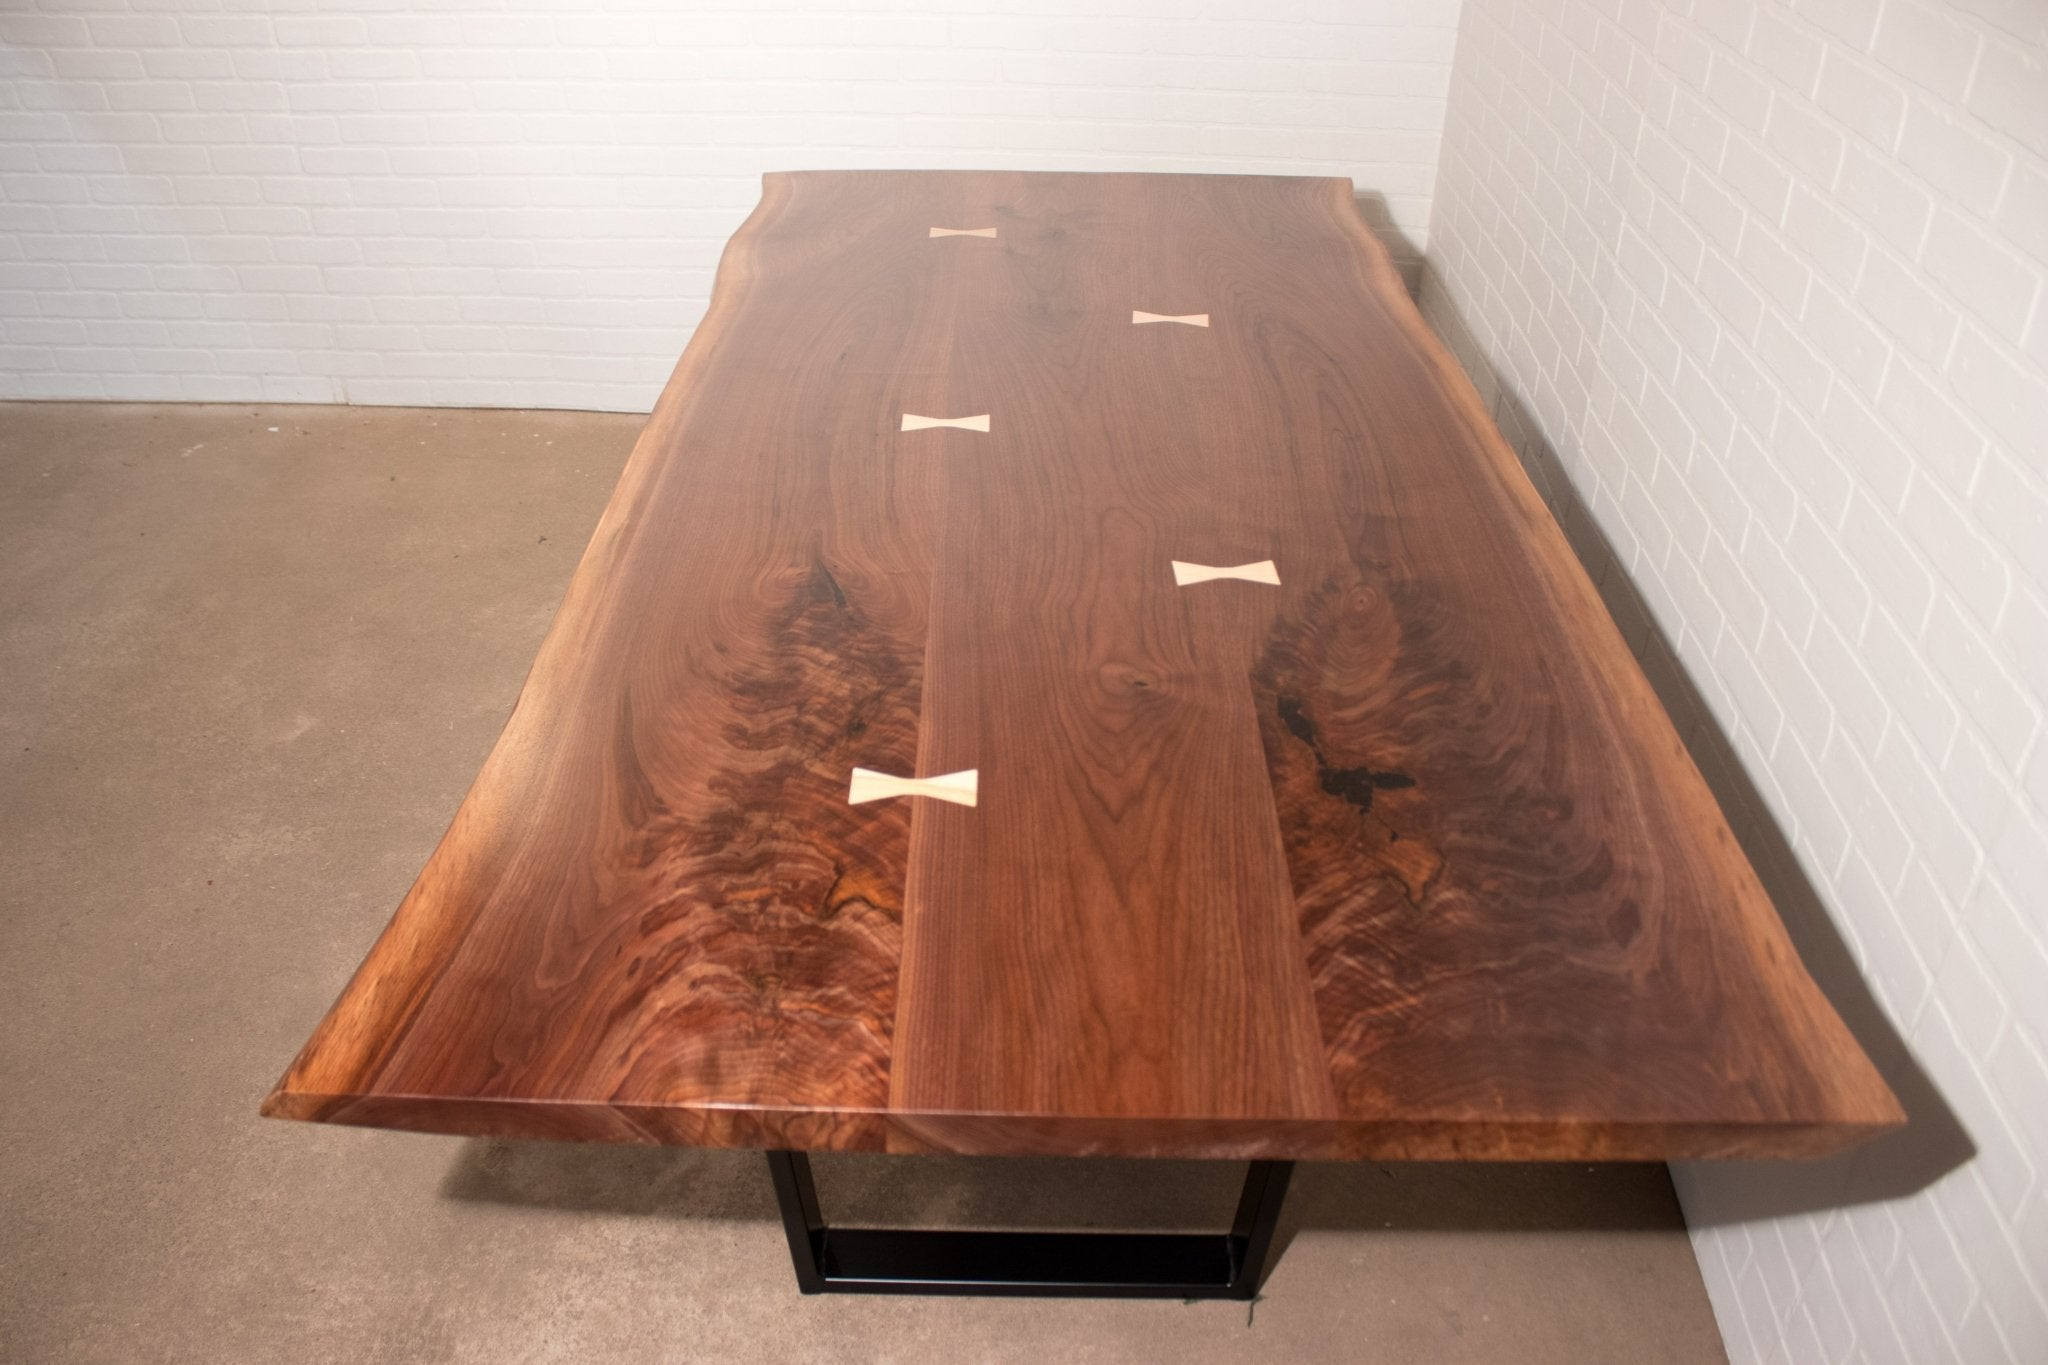 Walnut Dining Table with Bow Ties - Loewen Design Studios